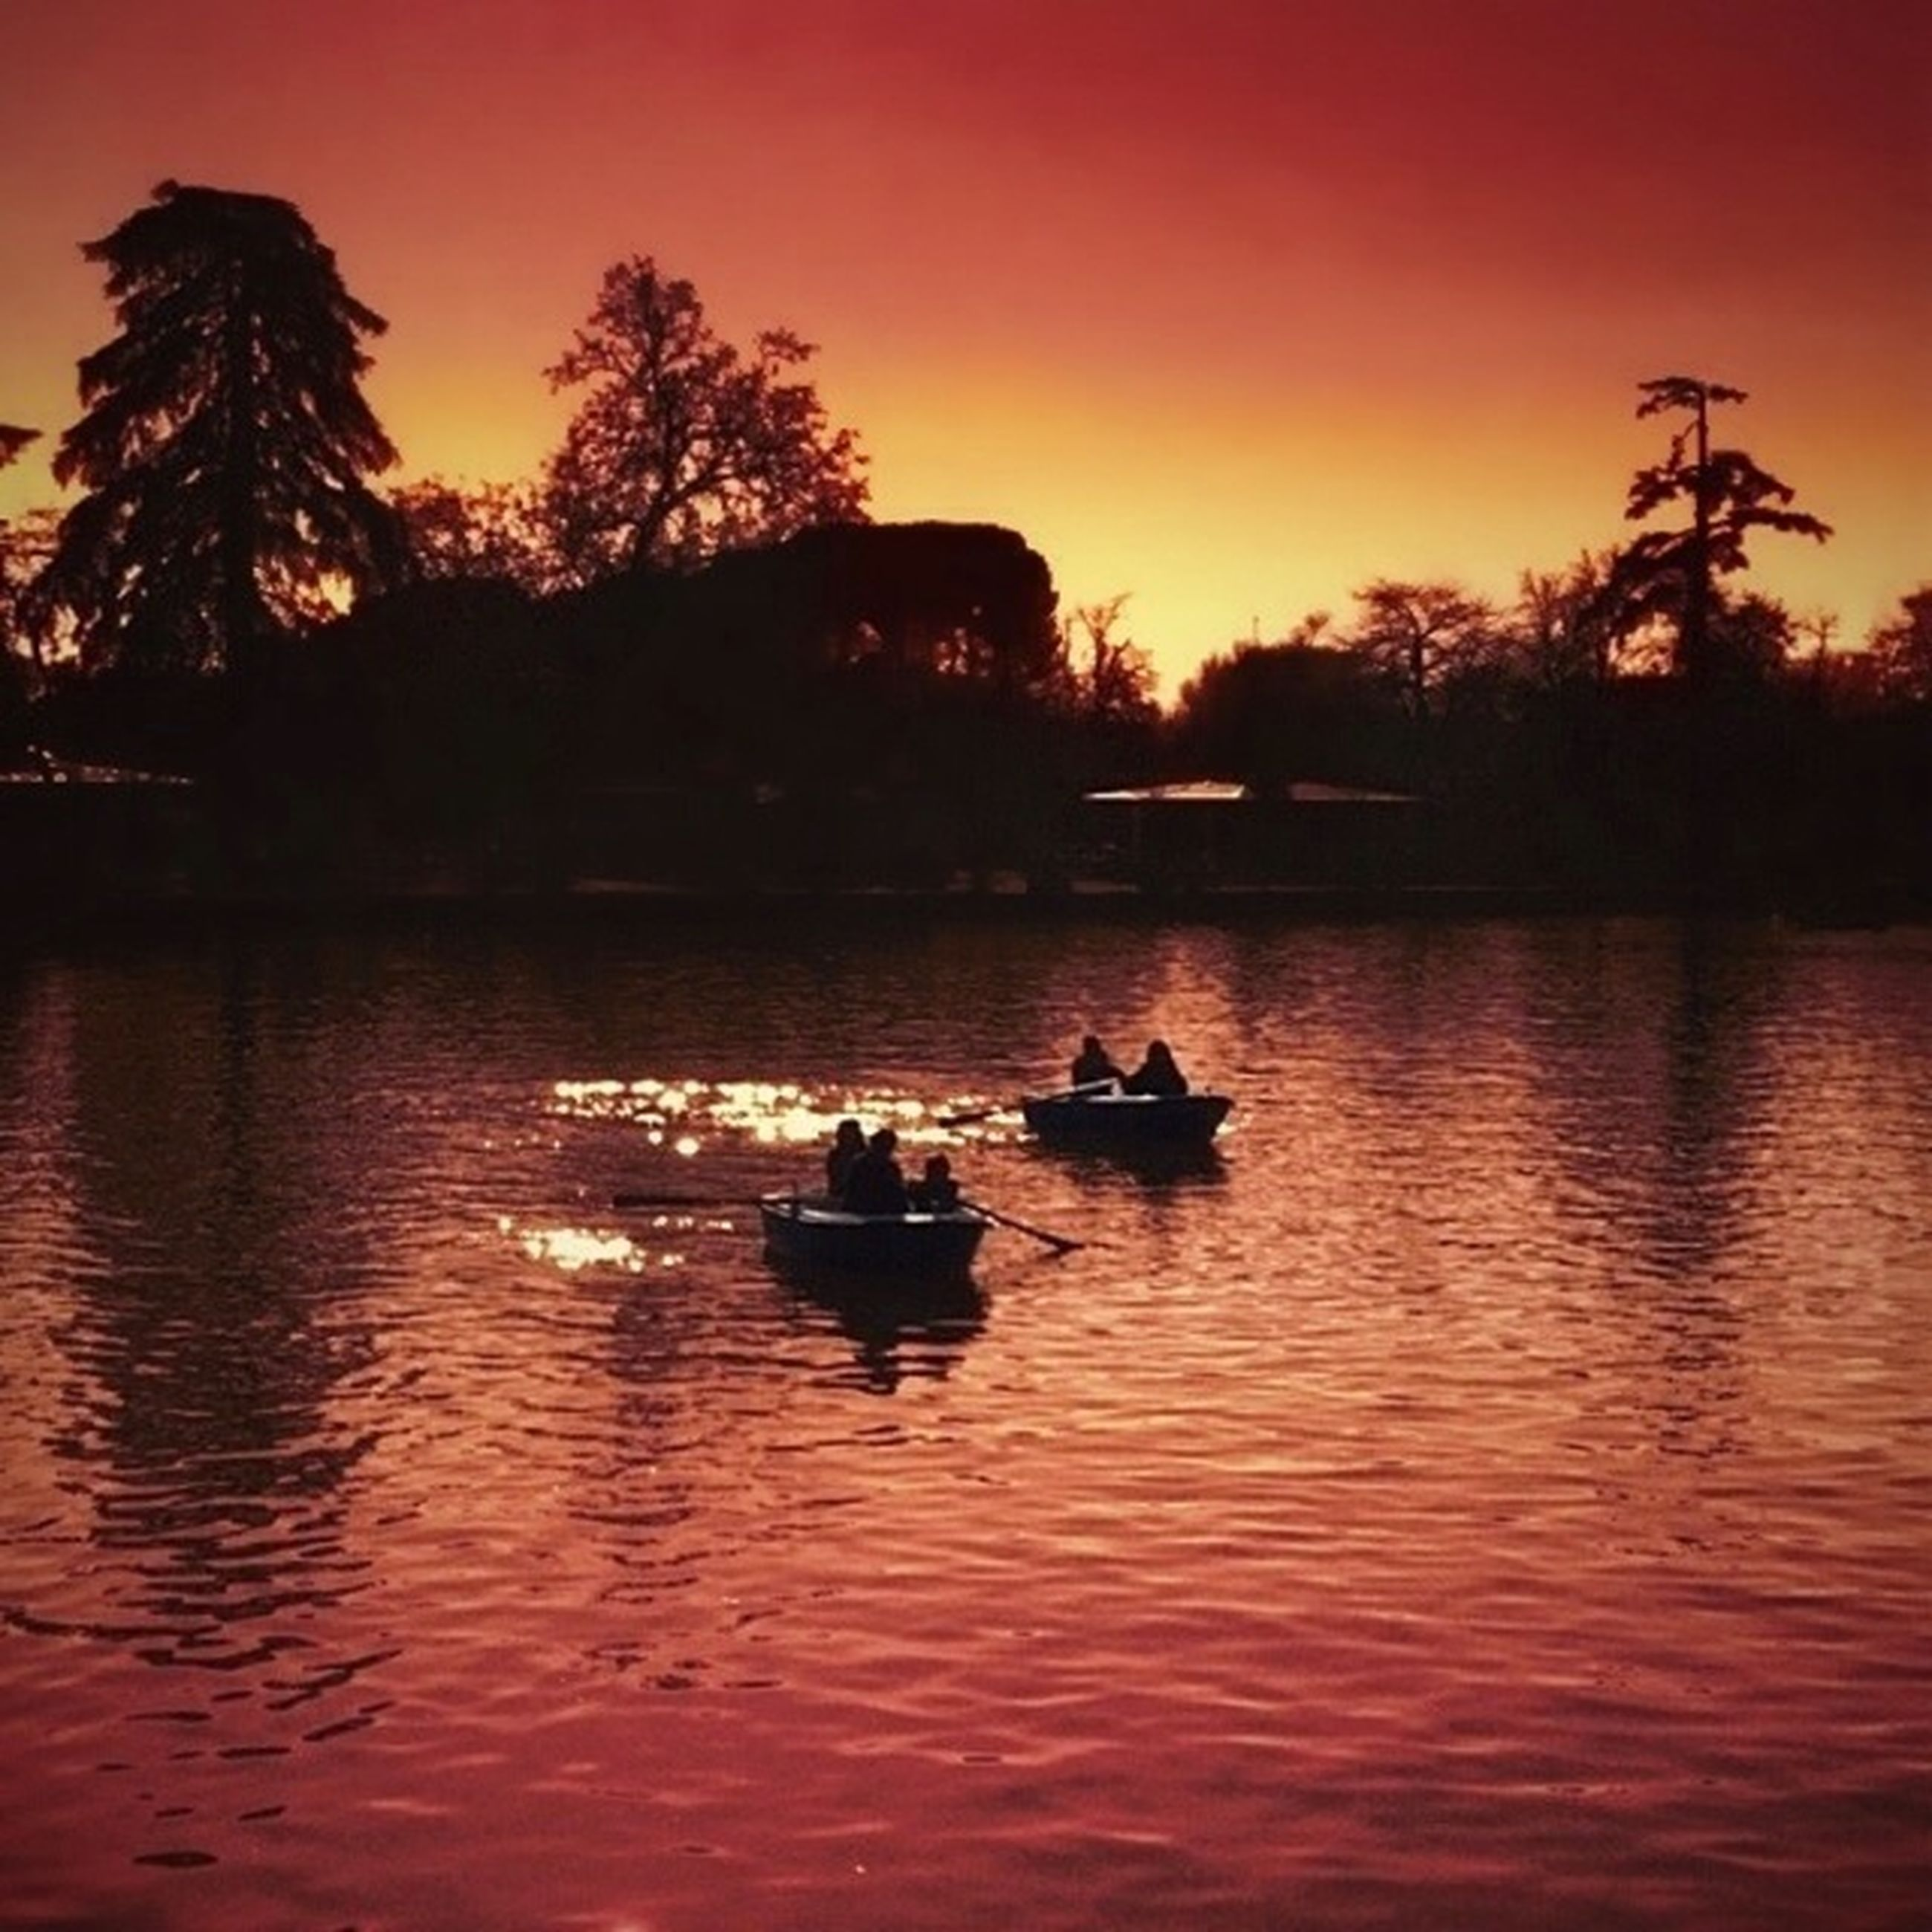 sunset, nautical vessel, transportation, water, silhouette, mode of transport, boat, tree, orange color, waterfront, reflection, tranquil scene, scenics, sky, lake, tranquility, beauty in nature, nature, rippled